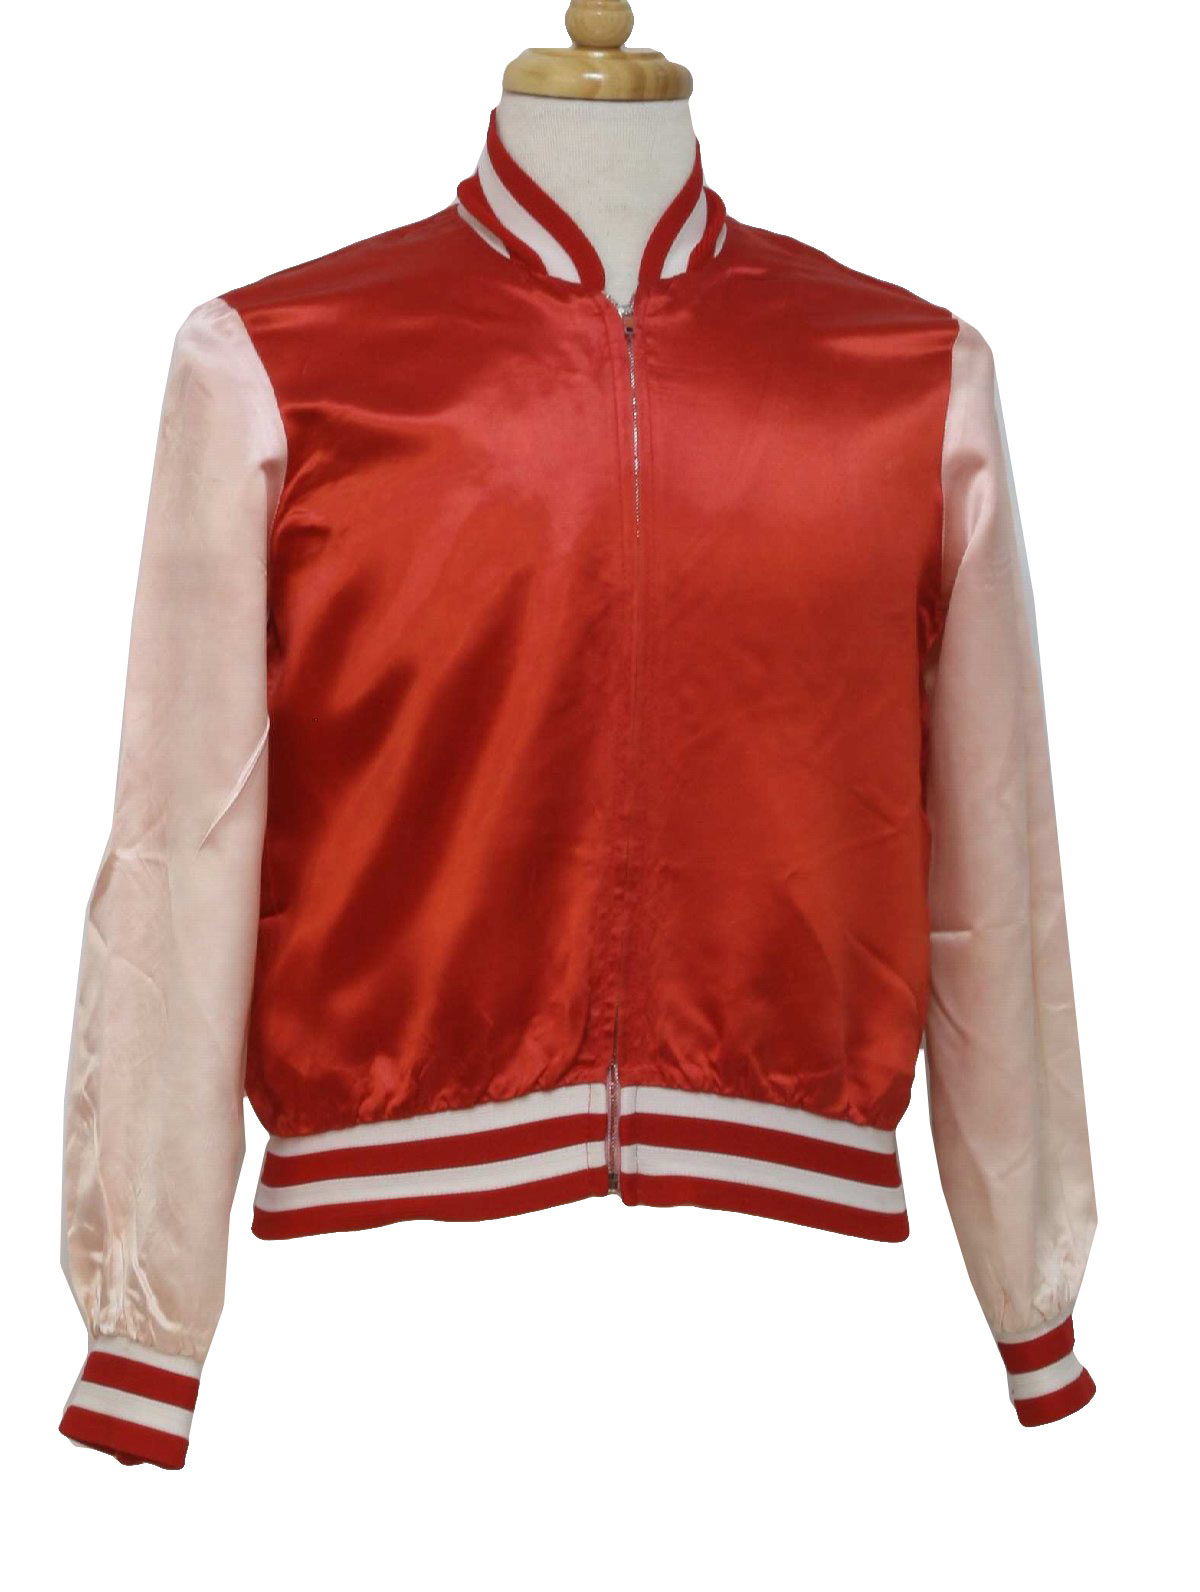 1960's Retro Jacket: 60s -No Label- Mens red, white rayon acetate ...